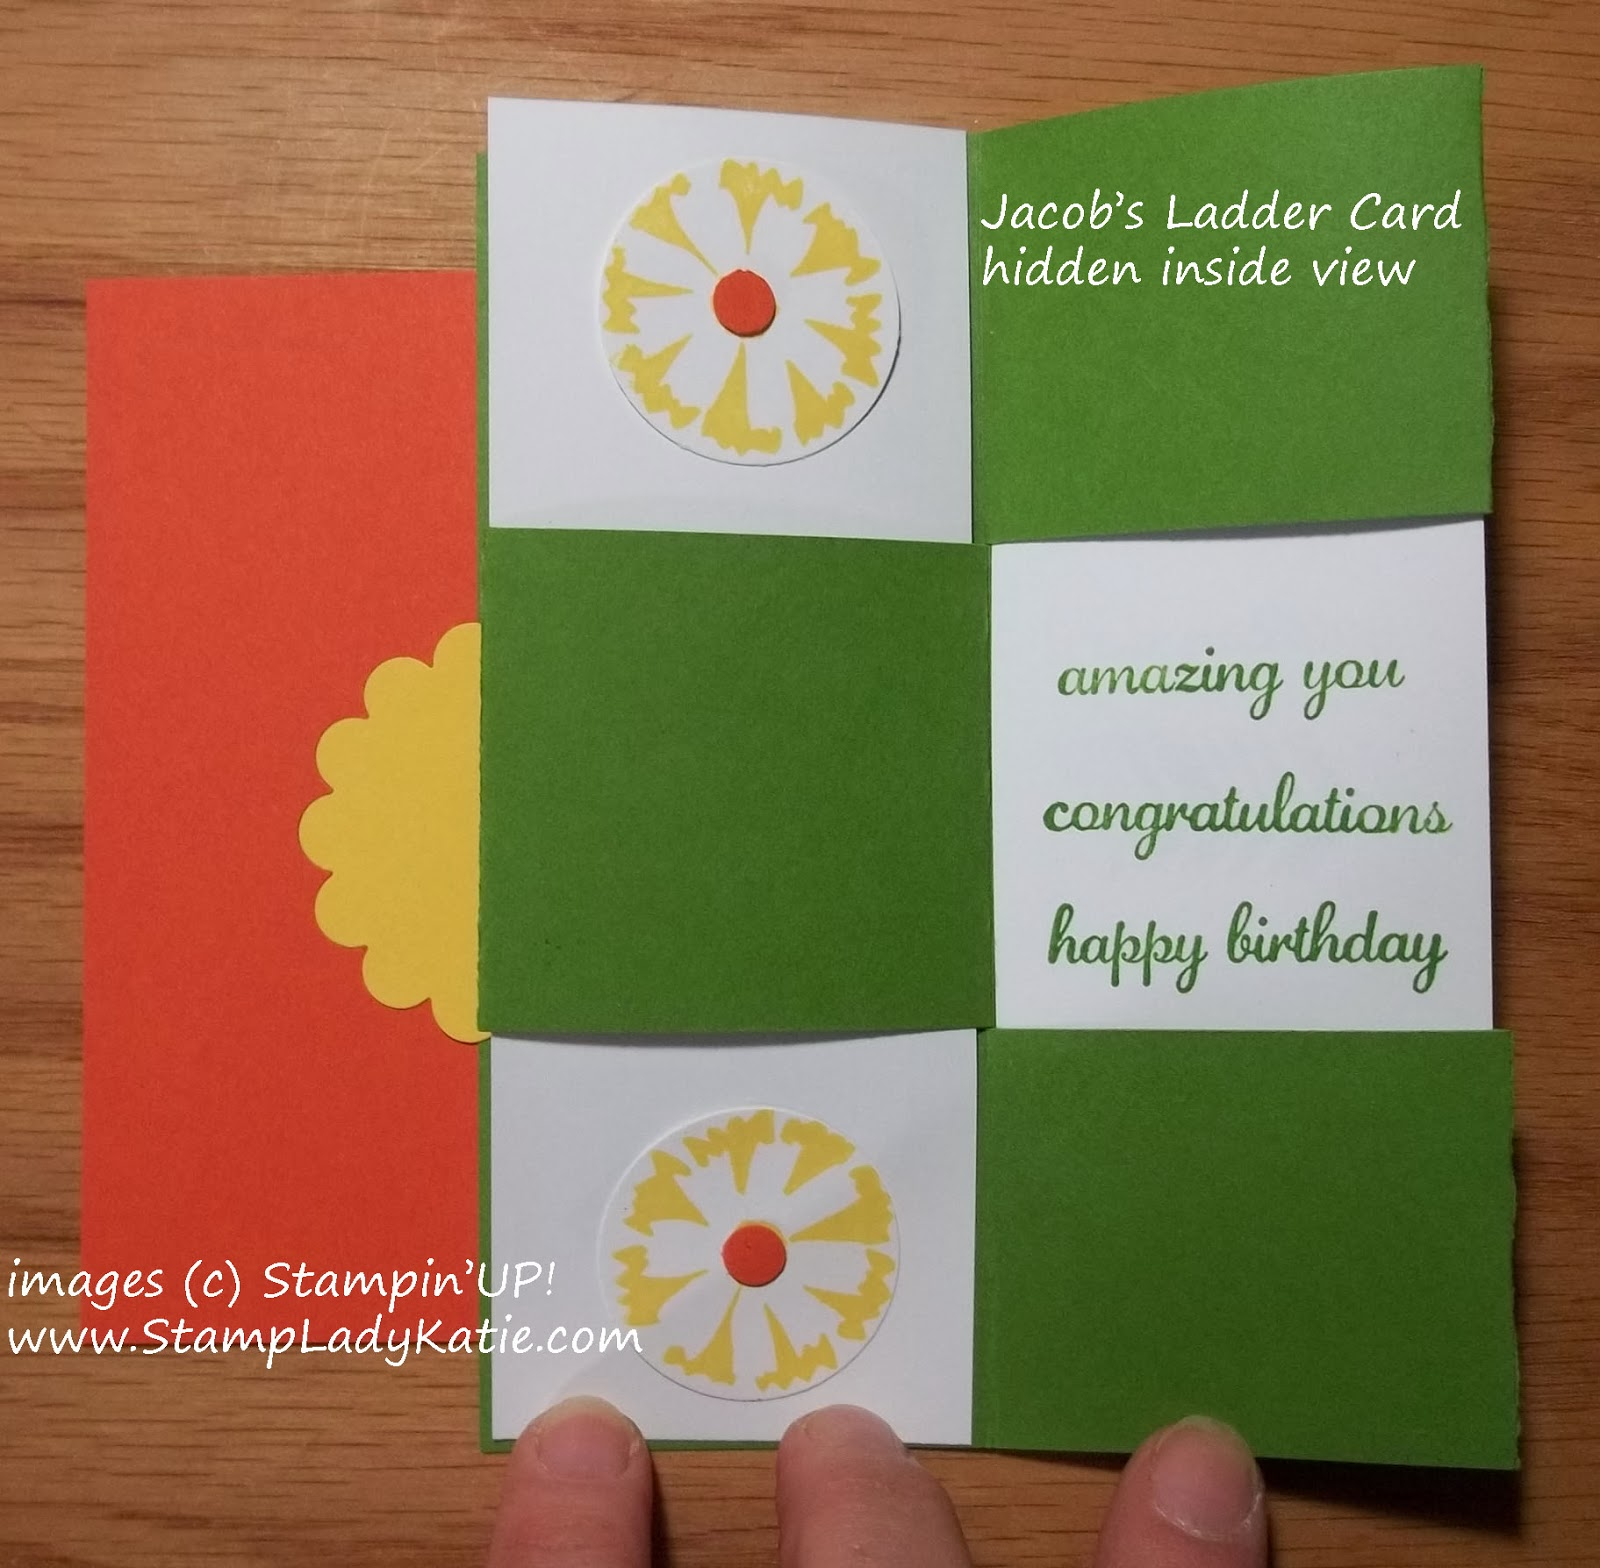 Jacob's Ladder Secret Message Card made with Stampin'UP! Petal Parade Stamp Set